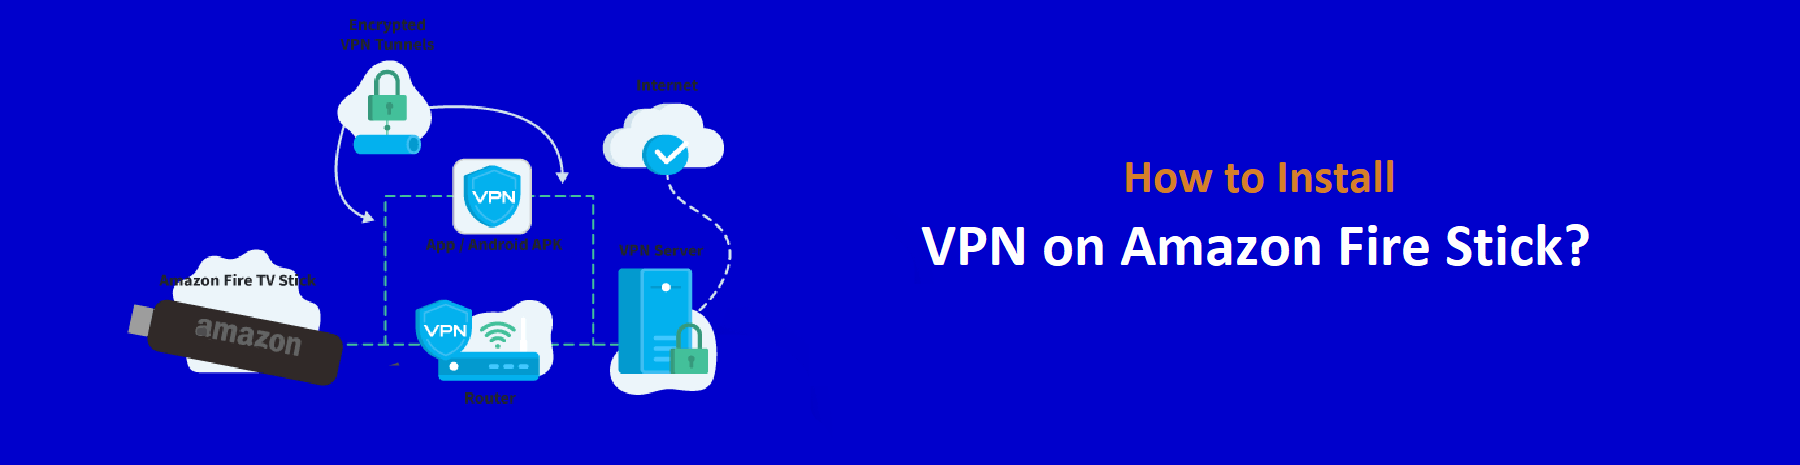 How to Install The Best VPN on Amazon Fire Stick?